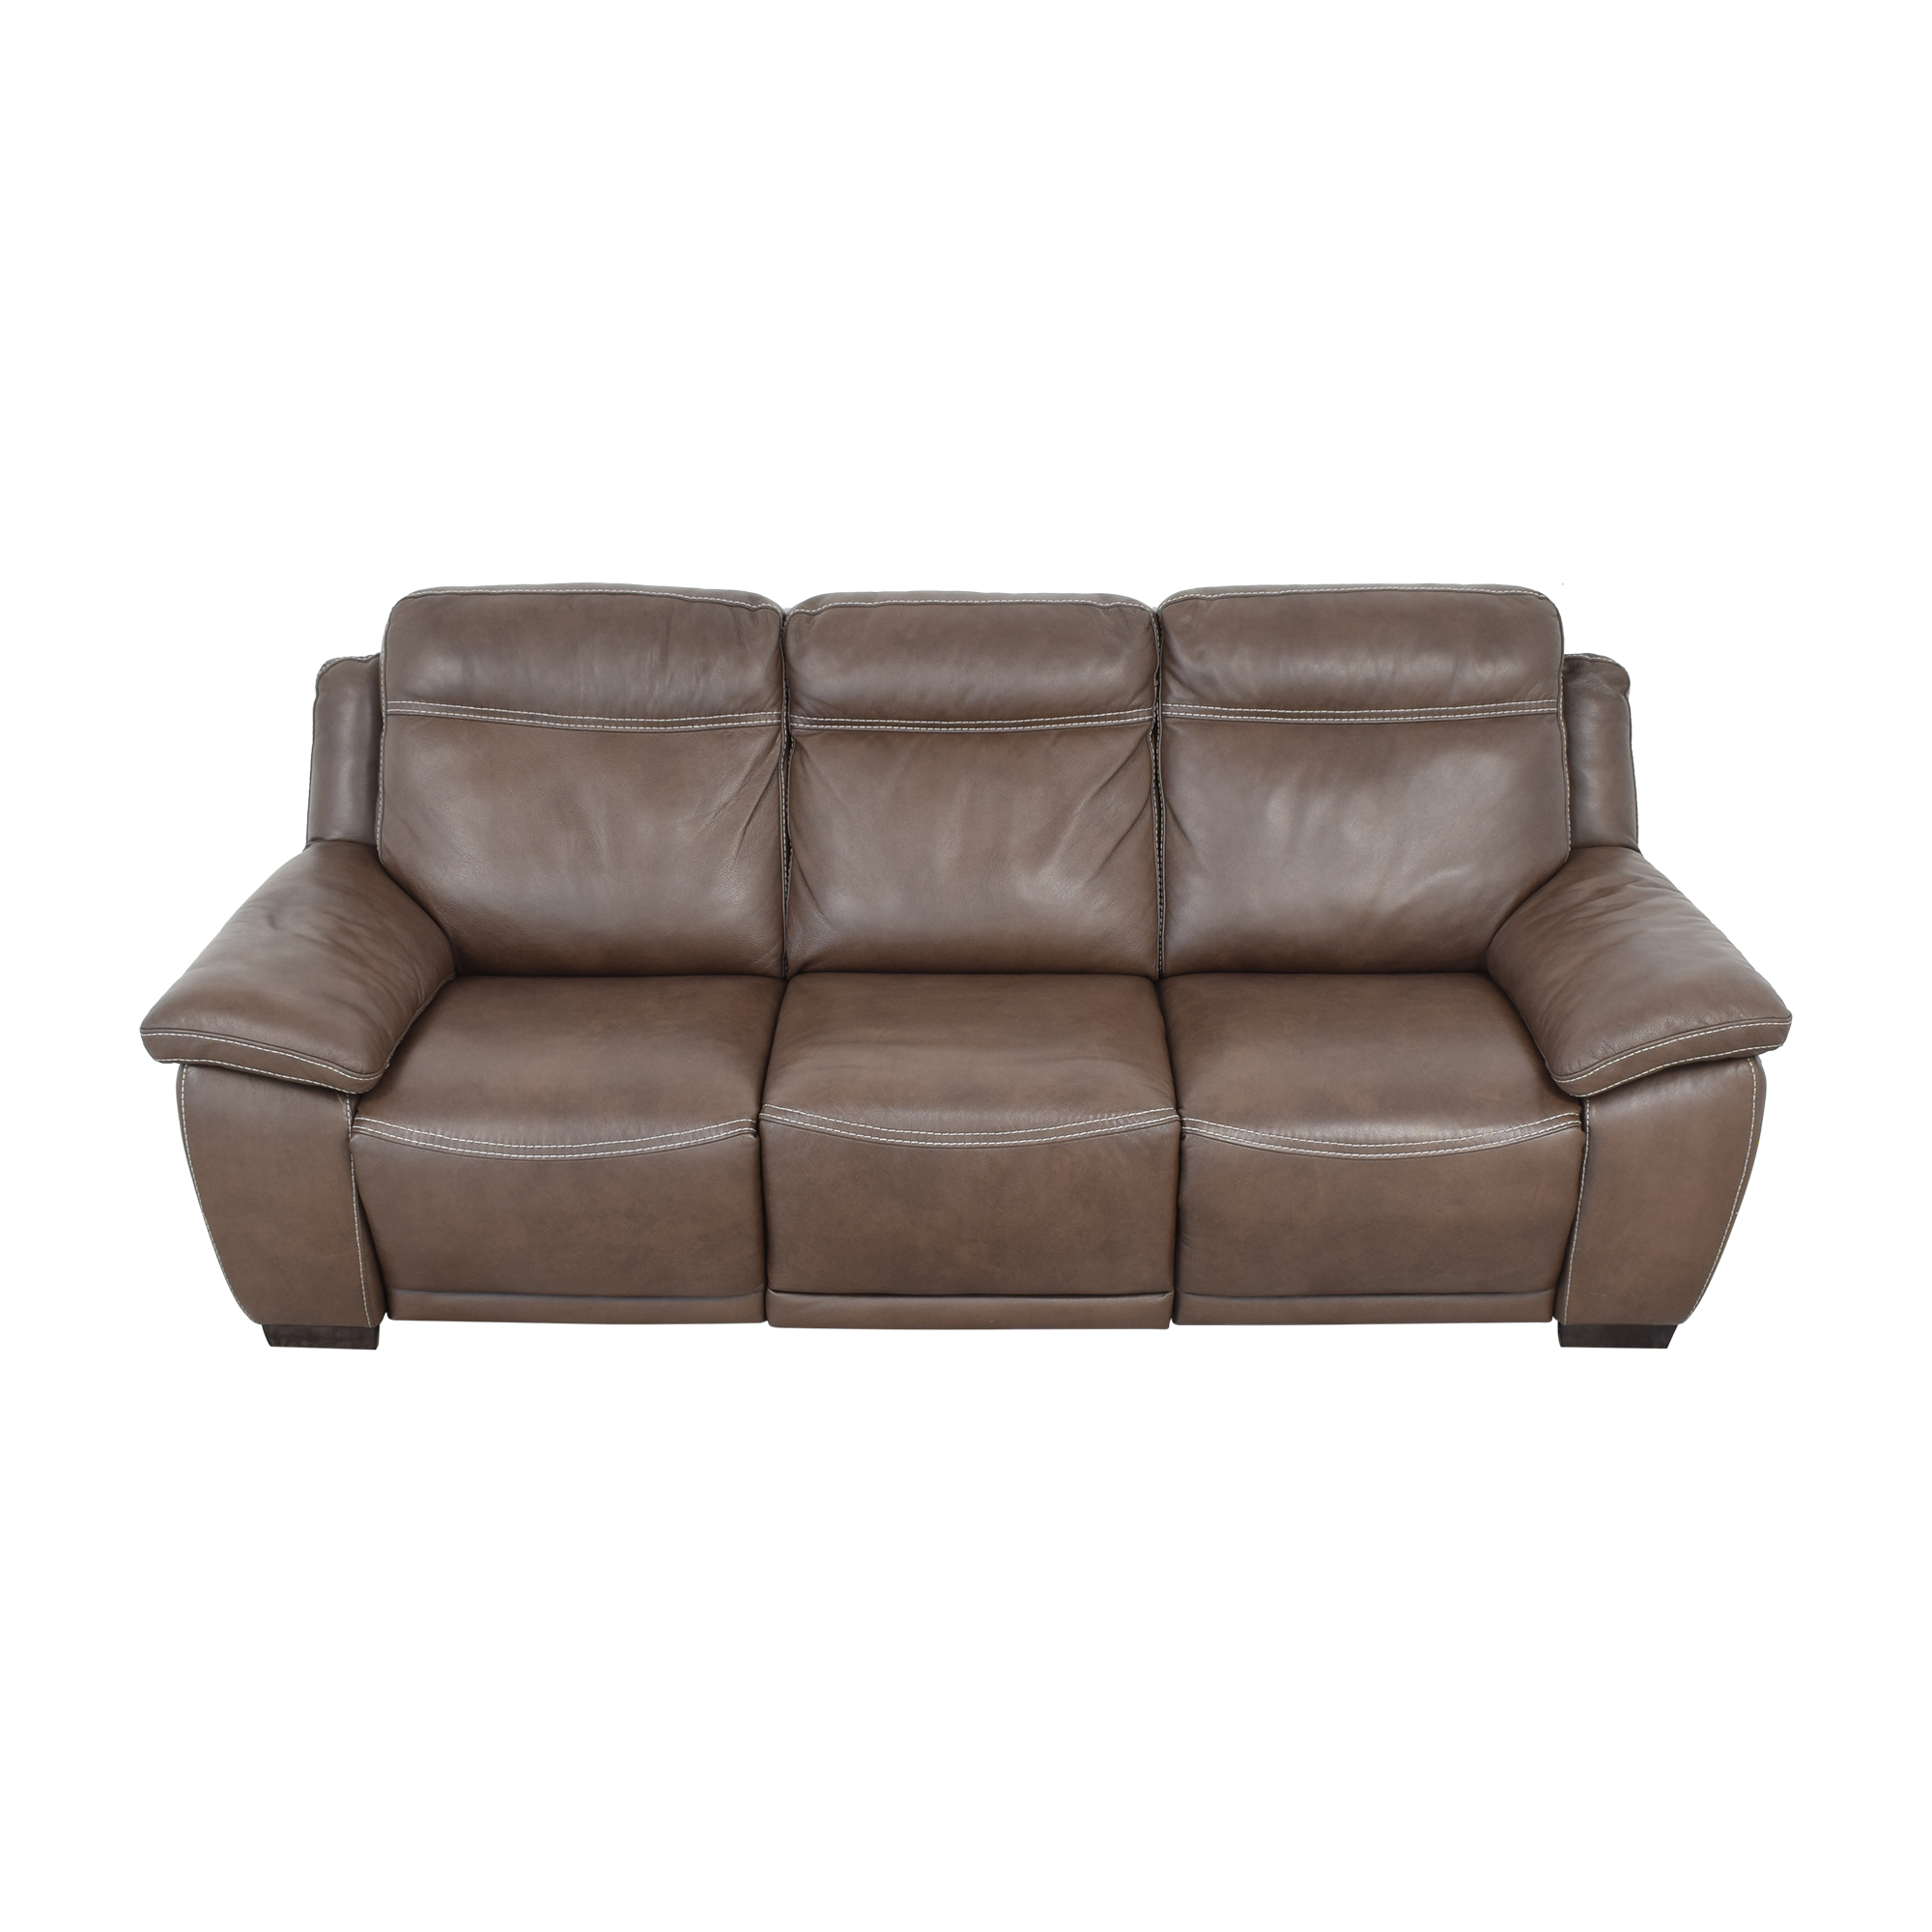 Raymour & Flanigan Sofa with Two Recliners Raymour & Flanigan